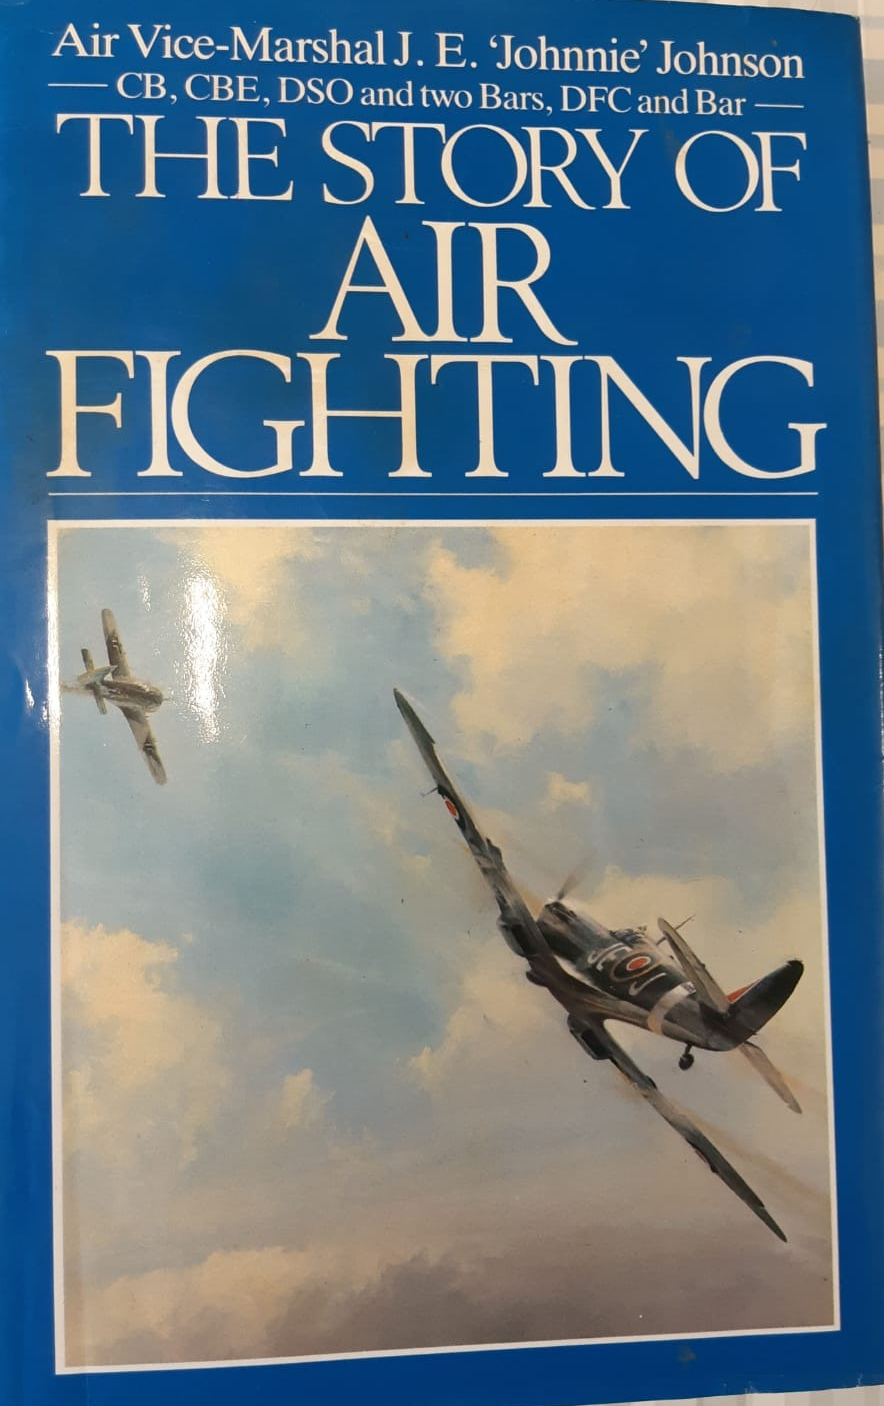 The Story of Air Fighting